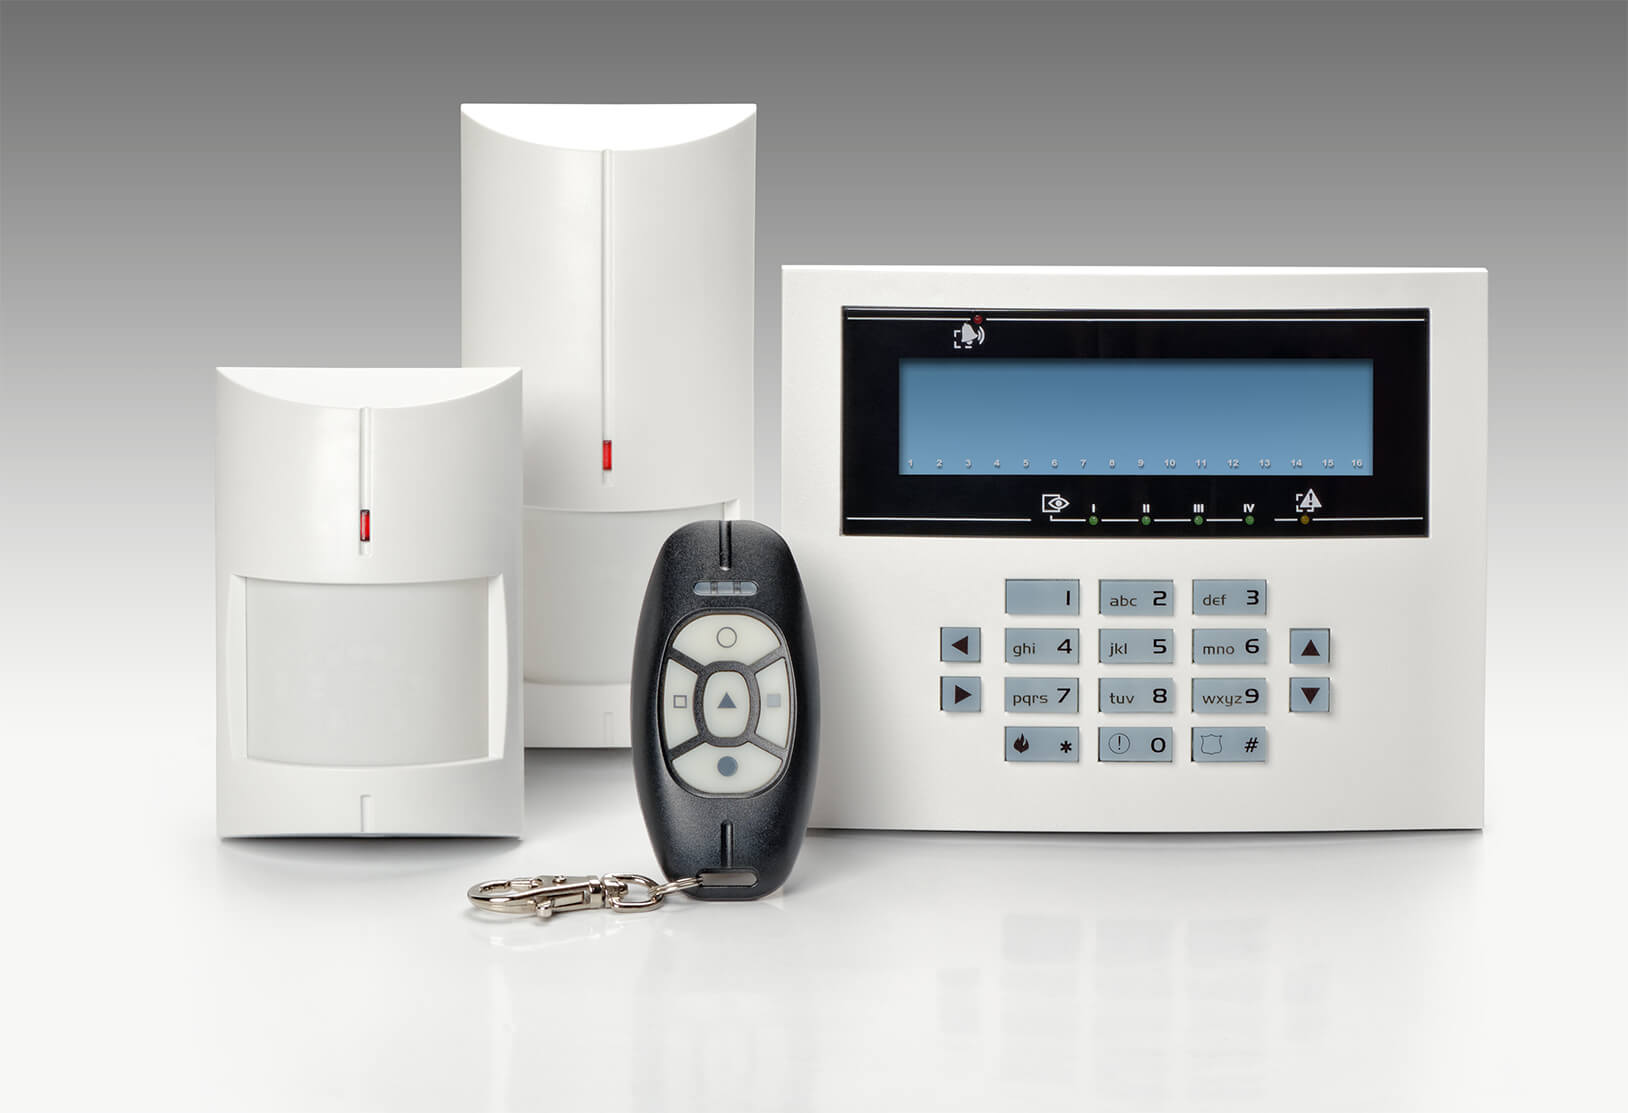 Commercial Burglar Alarms For Business in Mile End E1  - Local Mile End E1 burglar alarm company.Call 02078872244 - Dedicated to Safety & Security. Companies, shops and homes ..